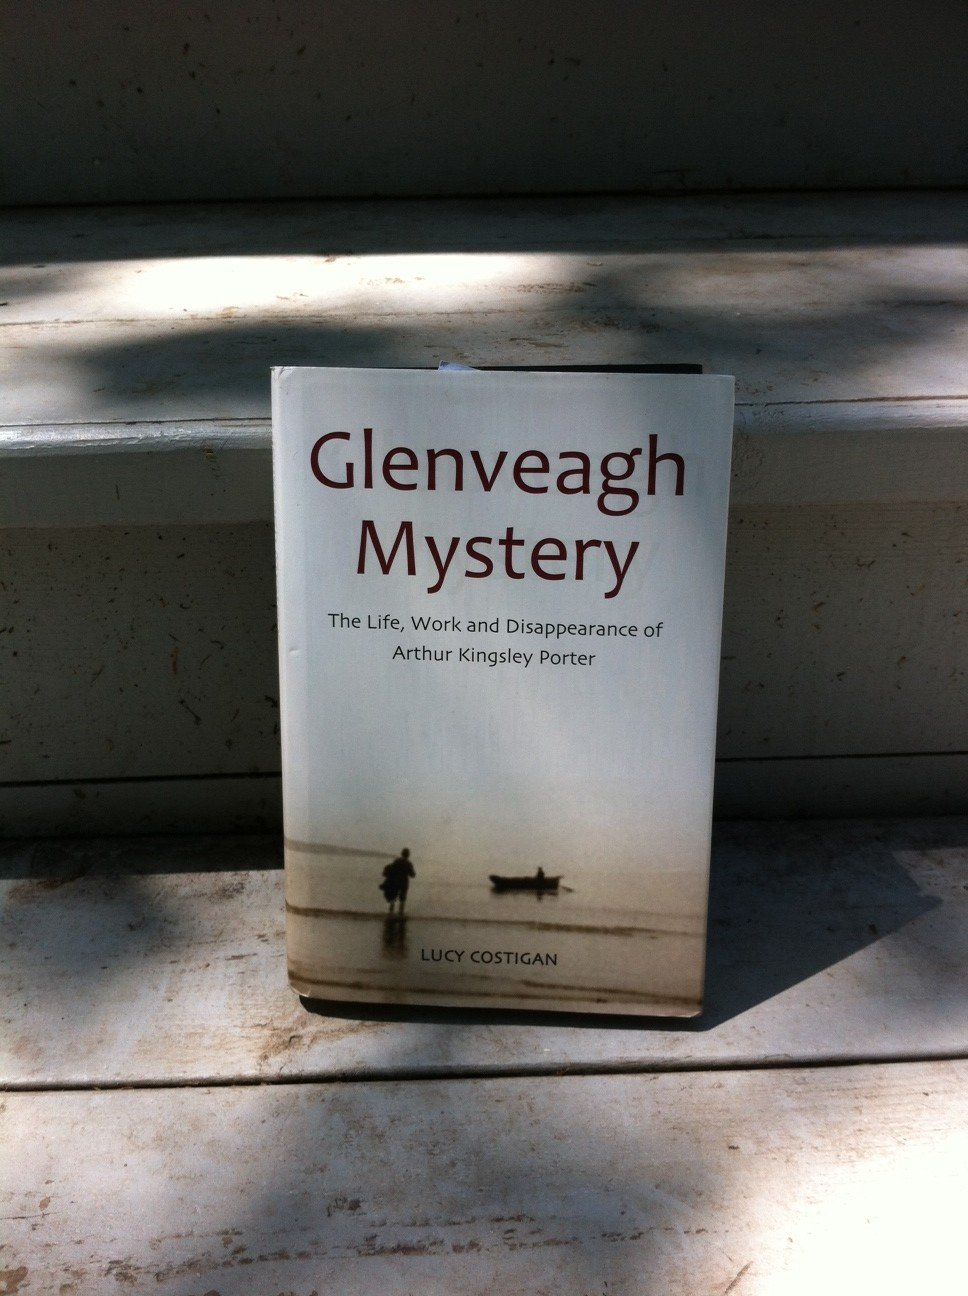 Glenveagh Mystery: The Life, Work and Disappearance of Arthur Kingsley Porter